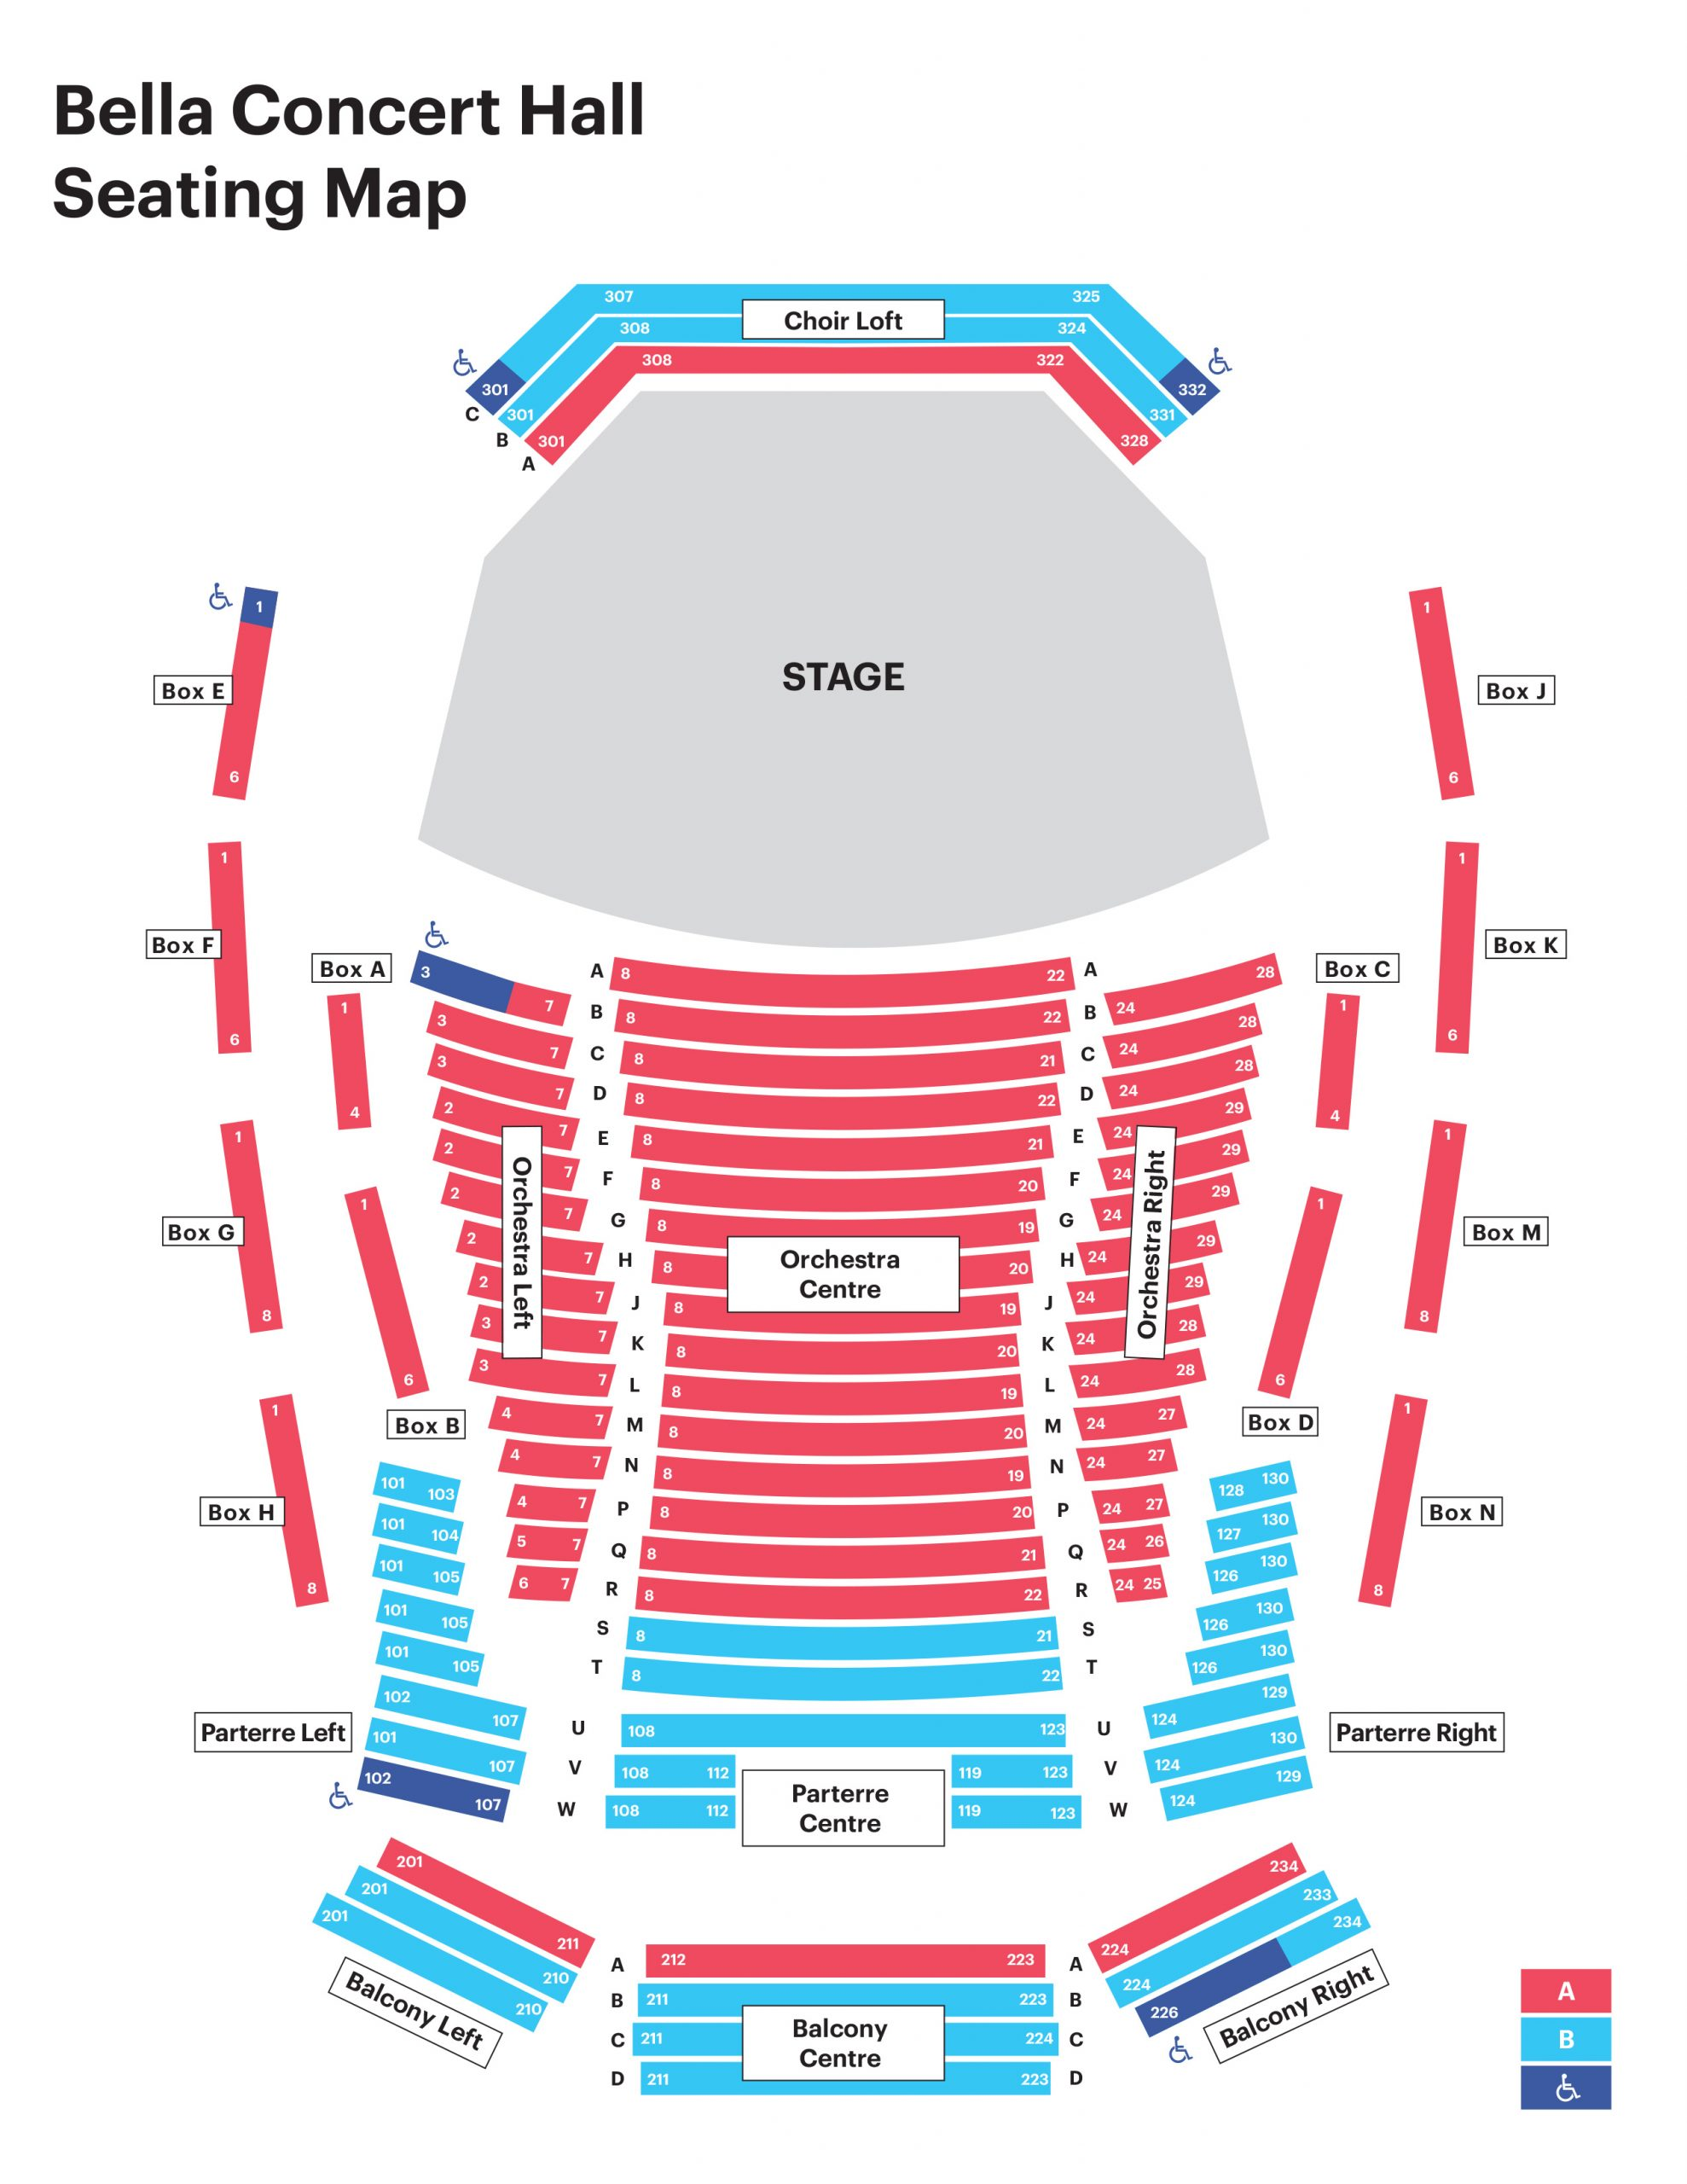 Bella concert hall seating map